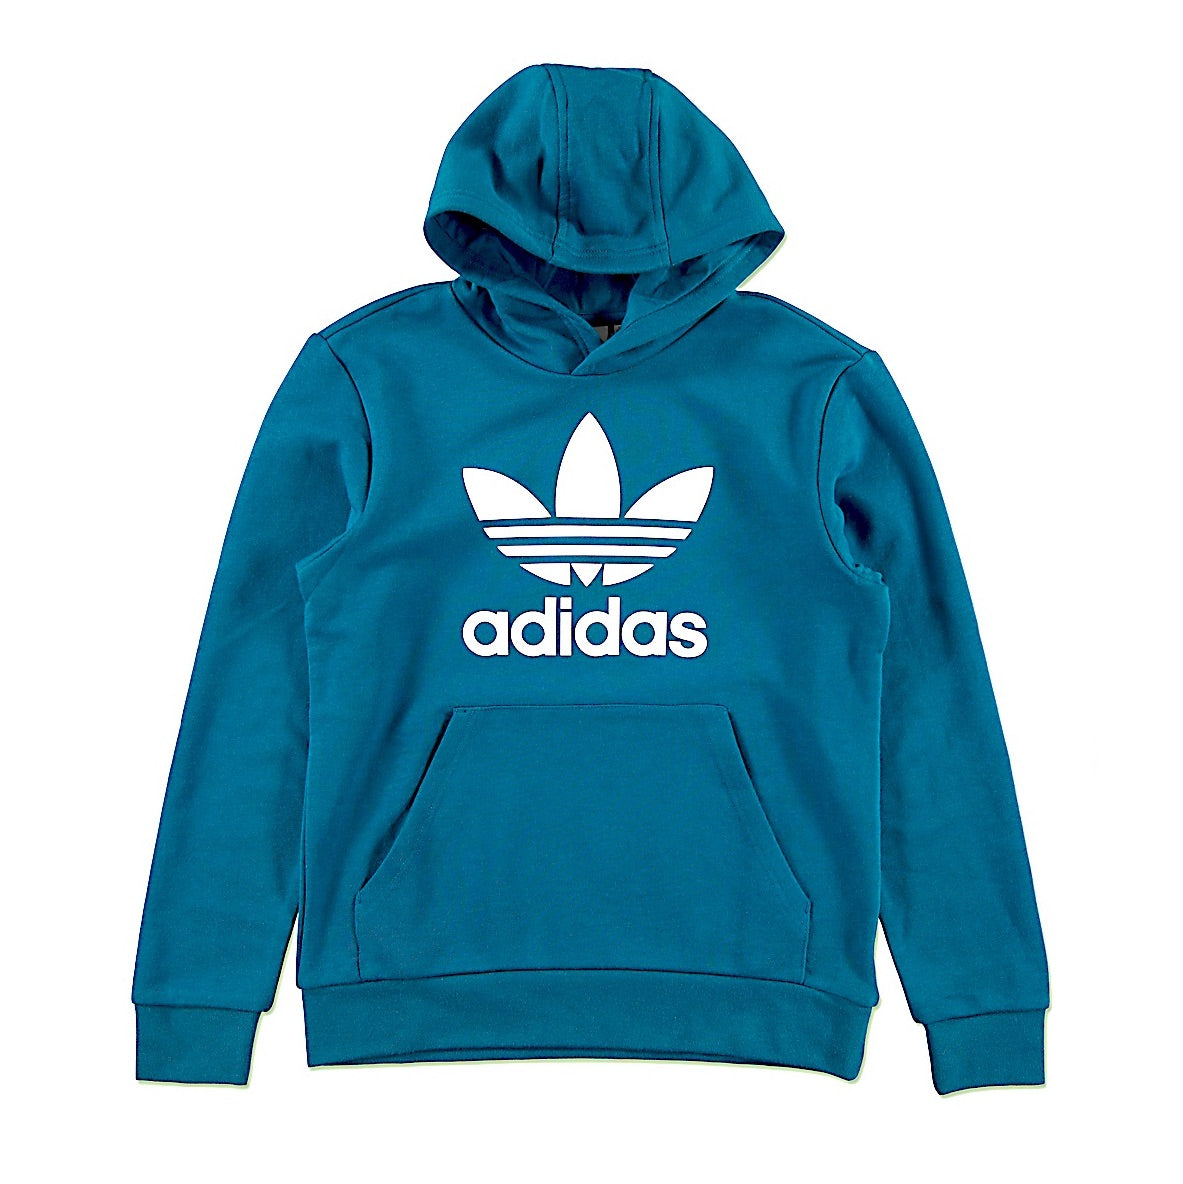 ADIDAS TREFOIL HOODIE YOUTH - BLUE